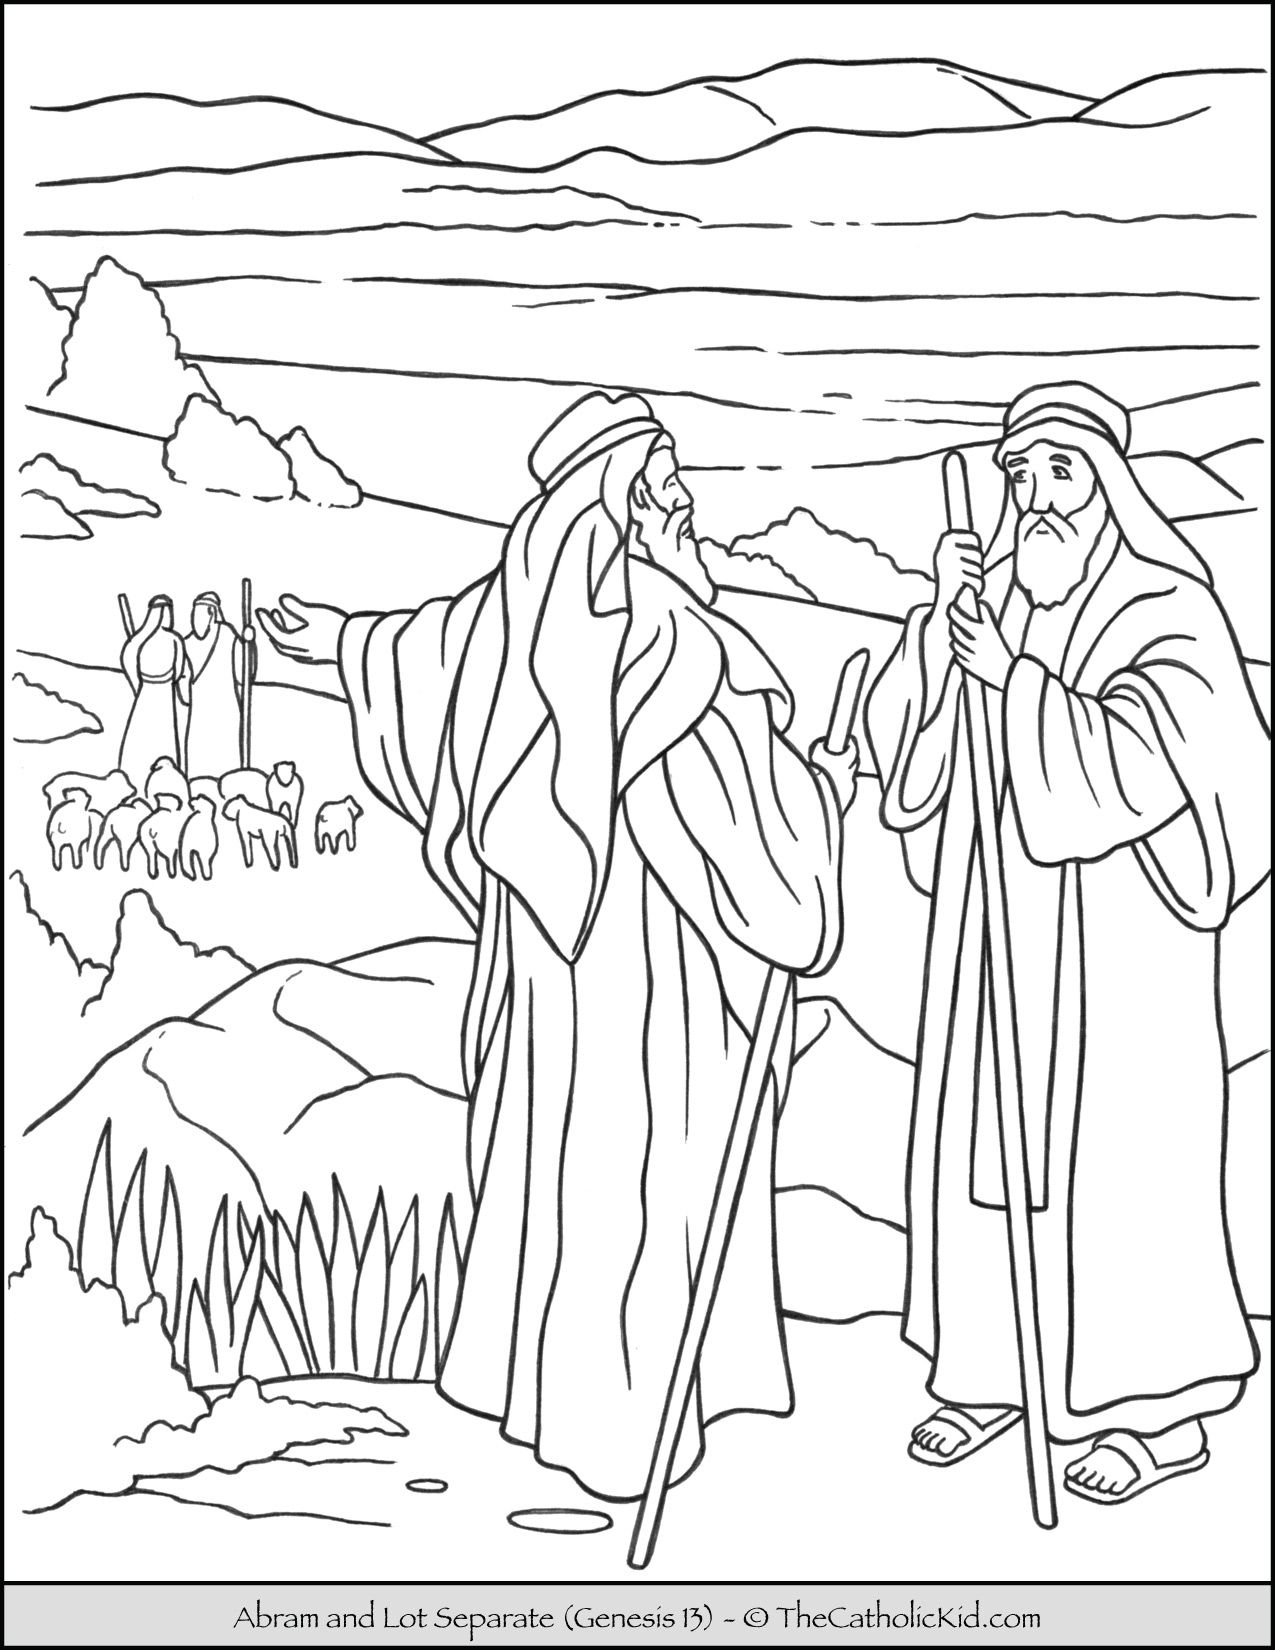 Abraham And Lot Bible Coloring Page Thecatholickid Com Bible Coloring Abraham And Lot Bible Coloring Pages